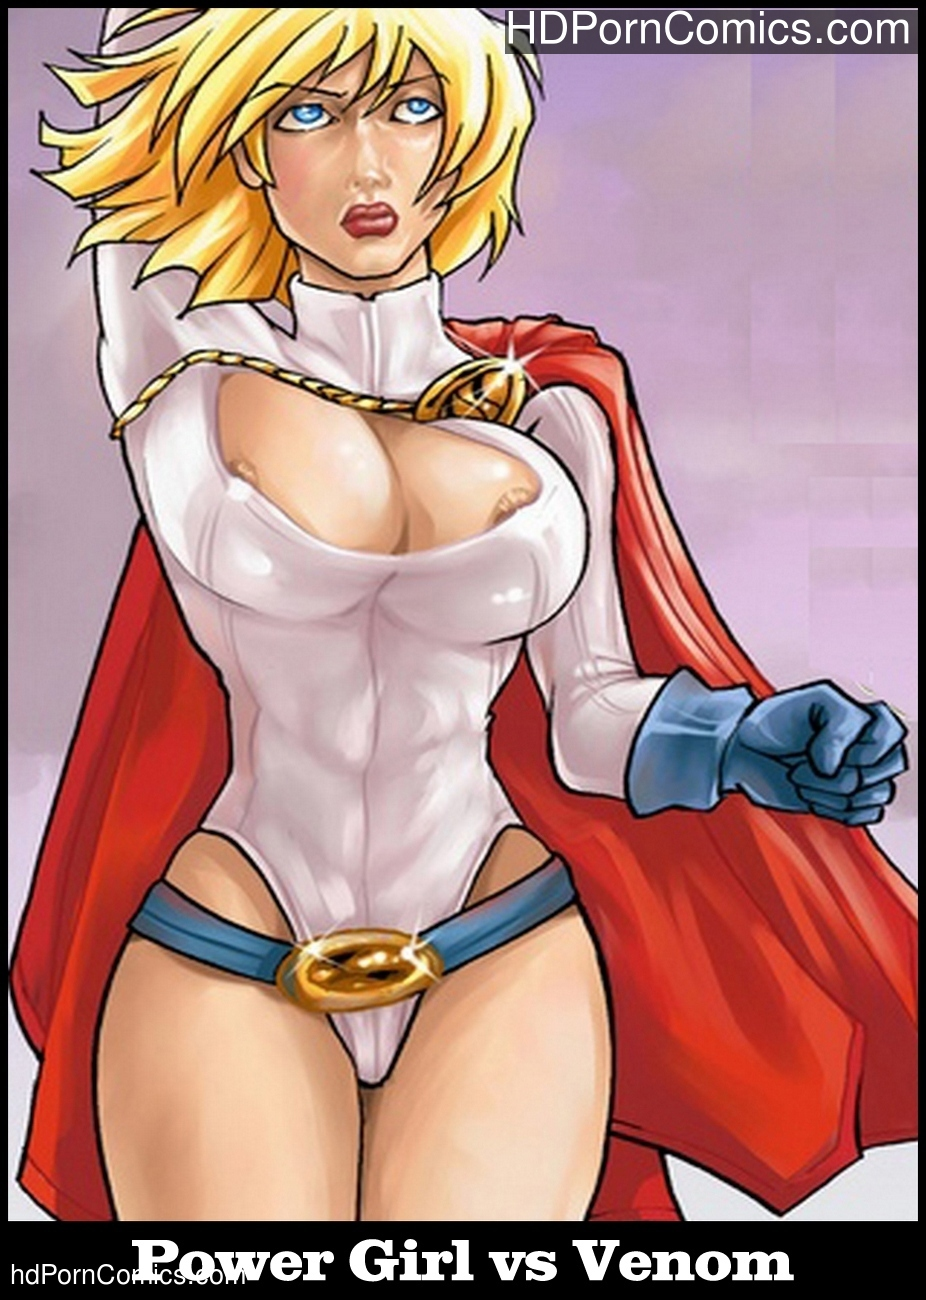 from Jasper hot power girl porn